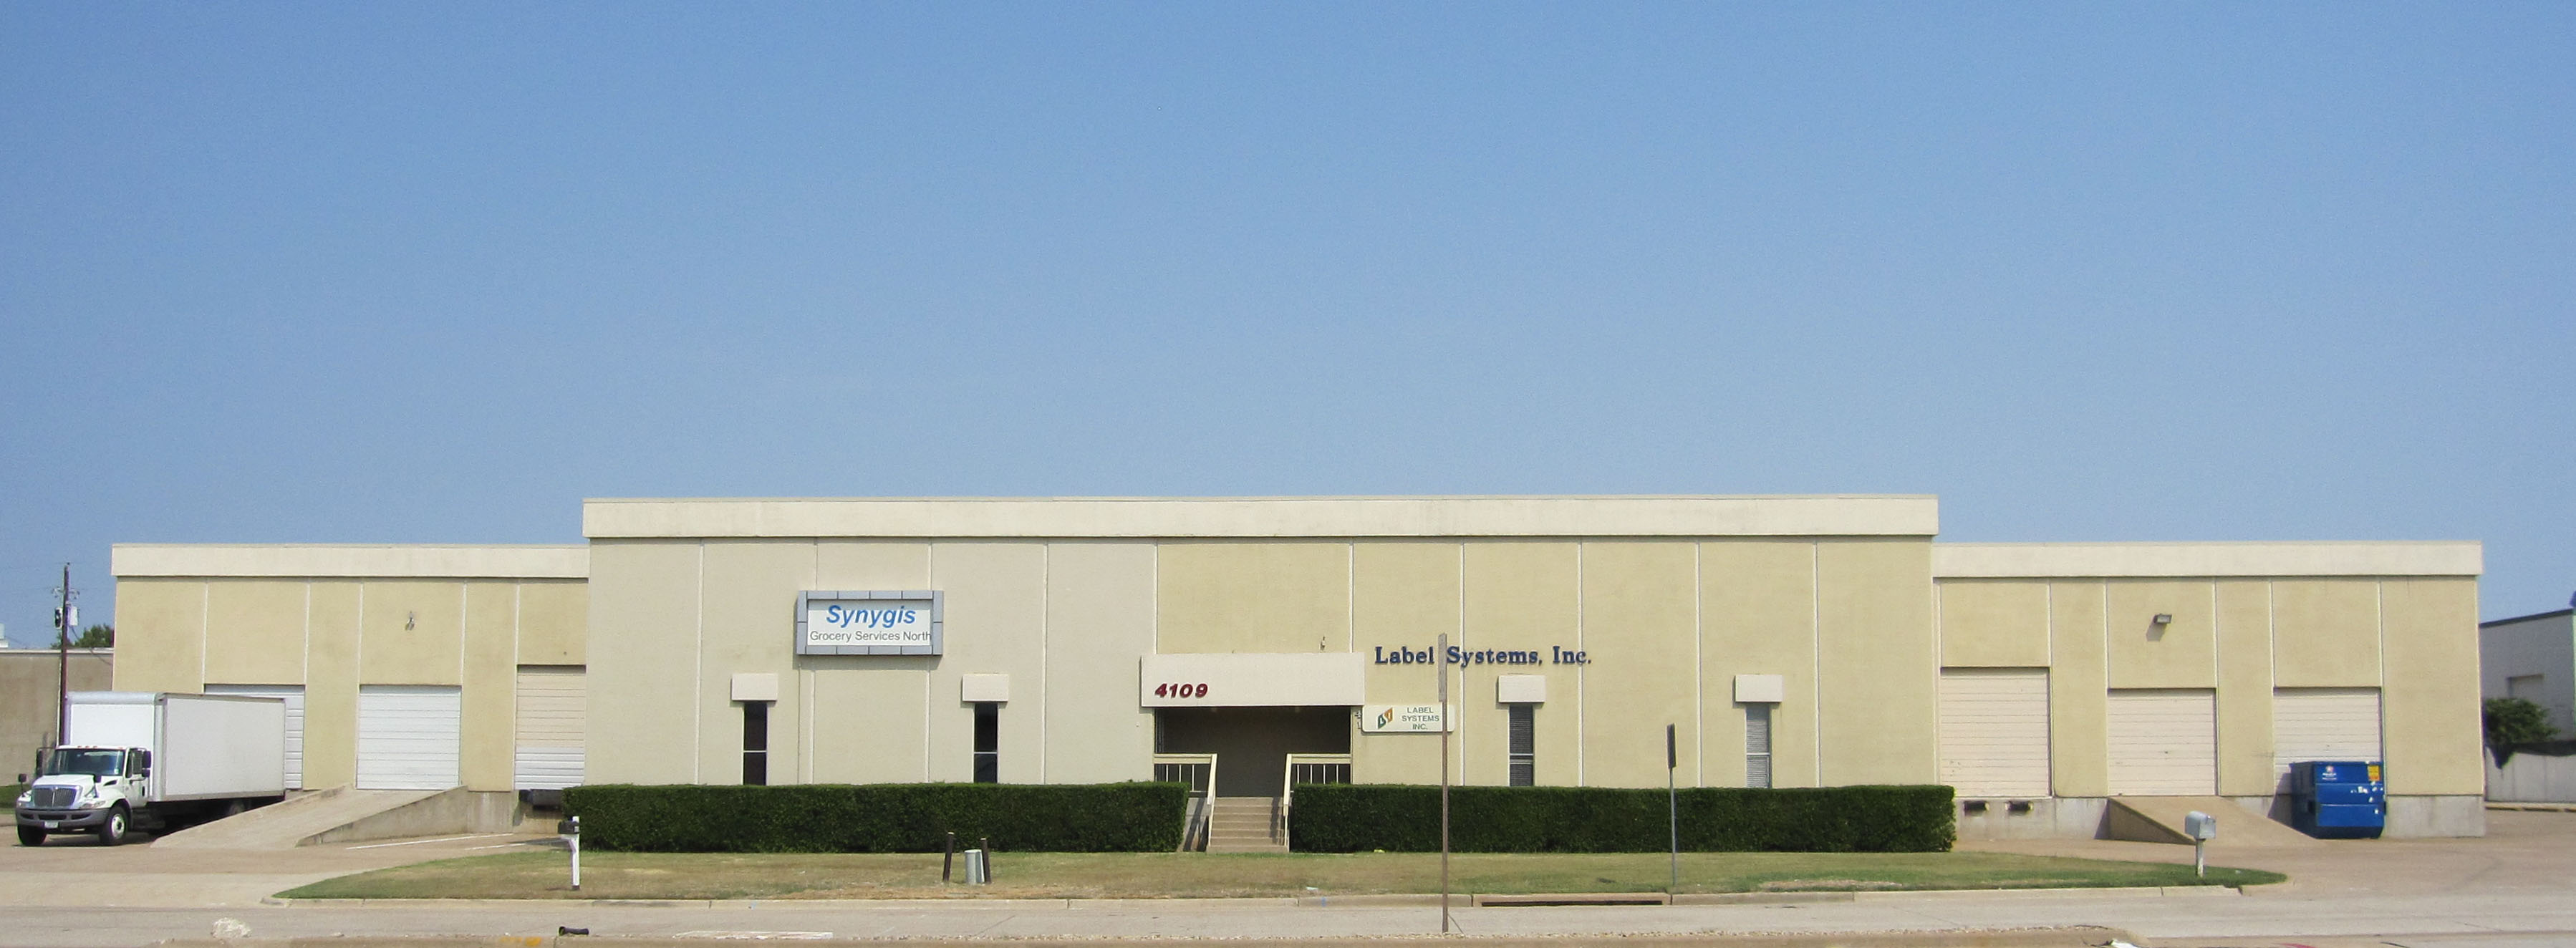 Label Systems Building - Addison, Texas